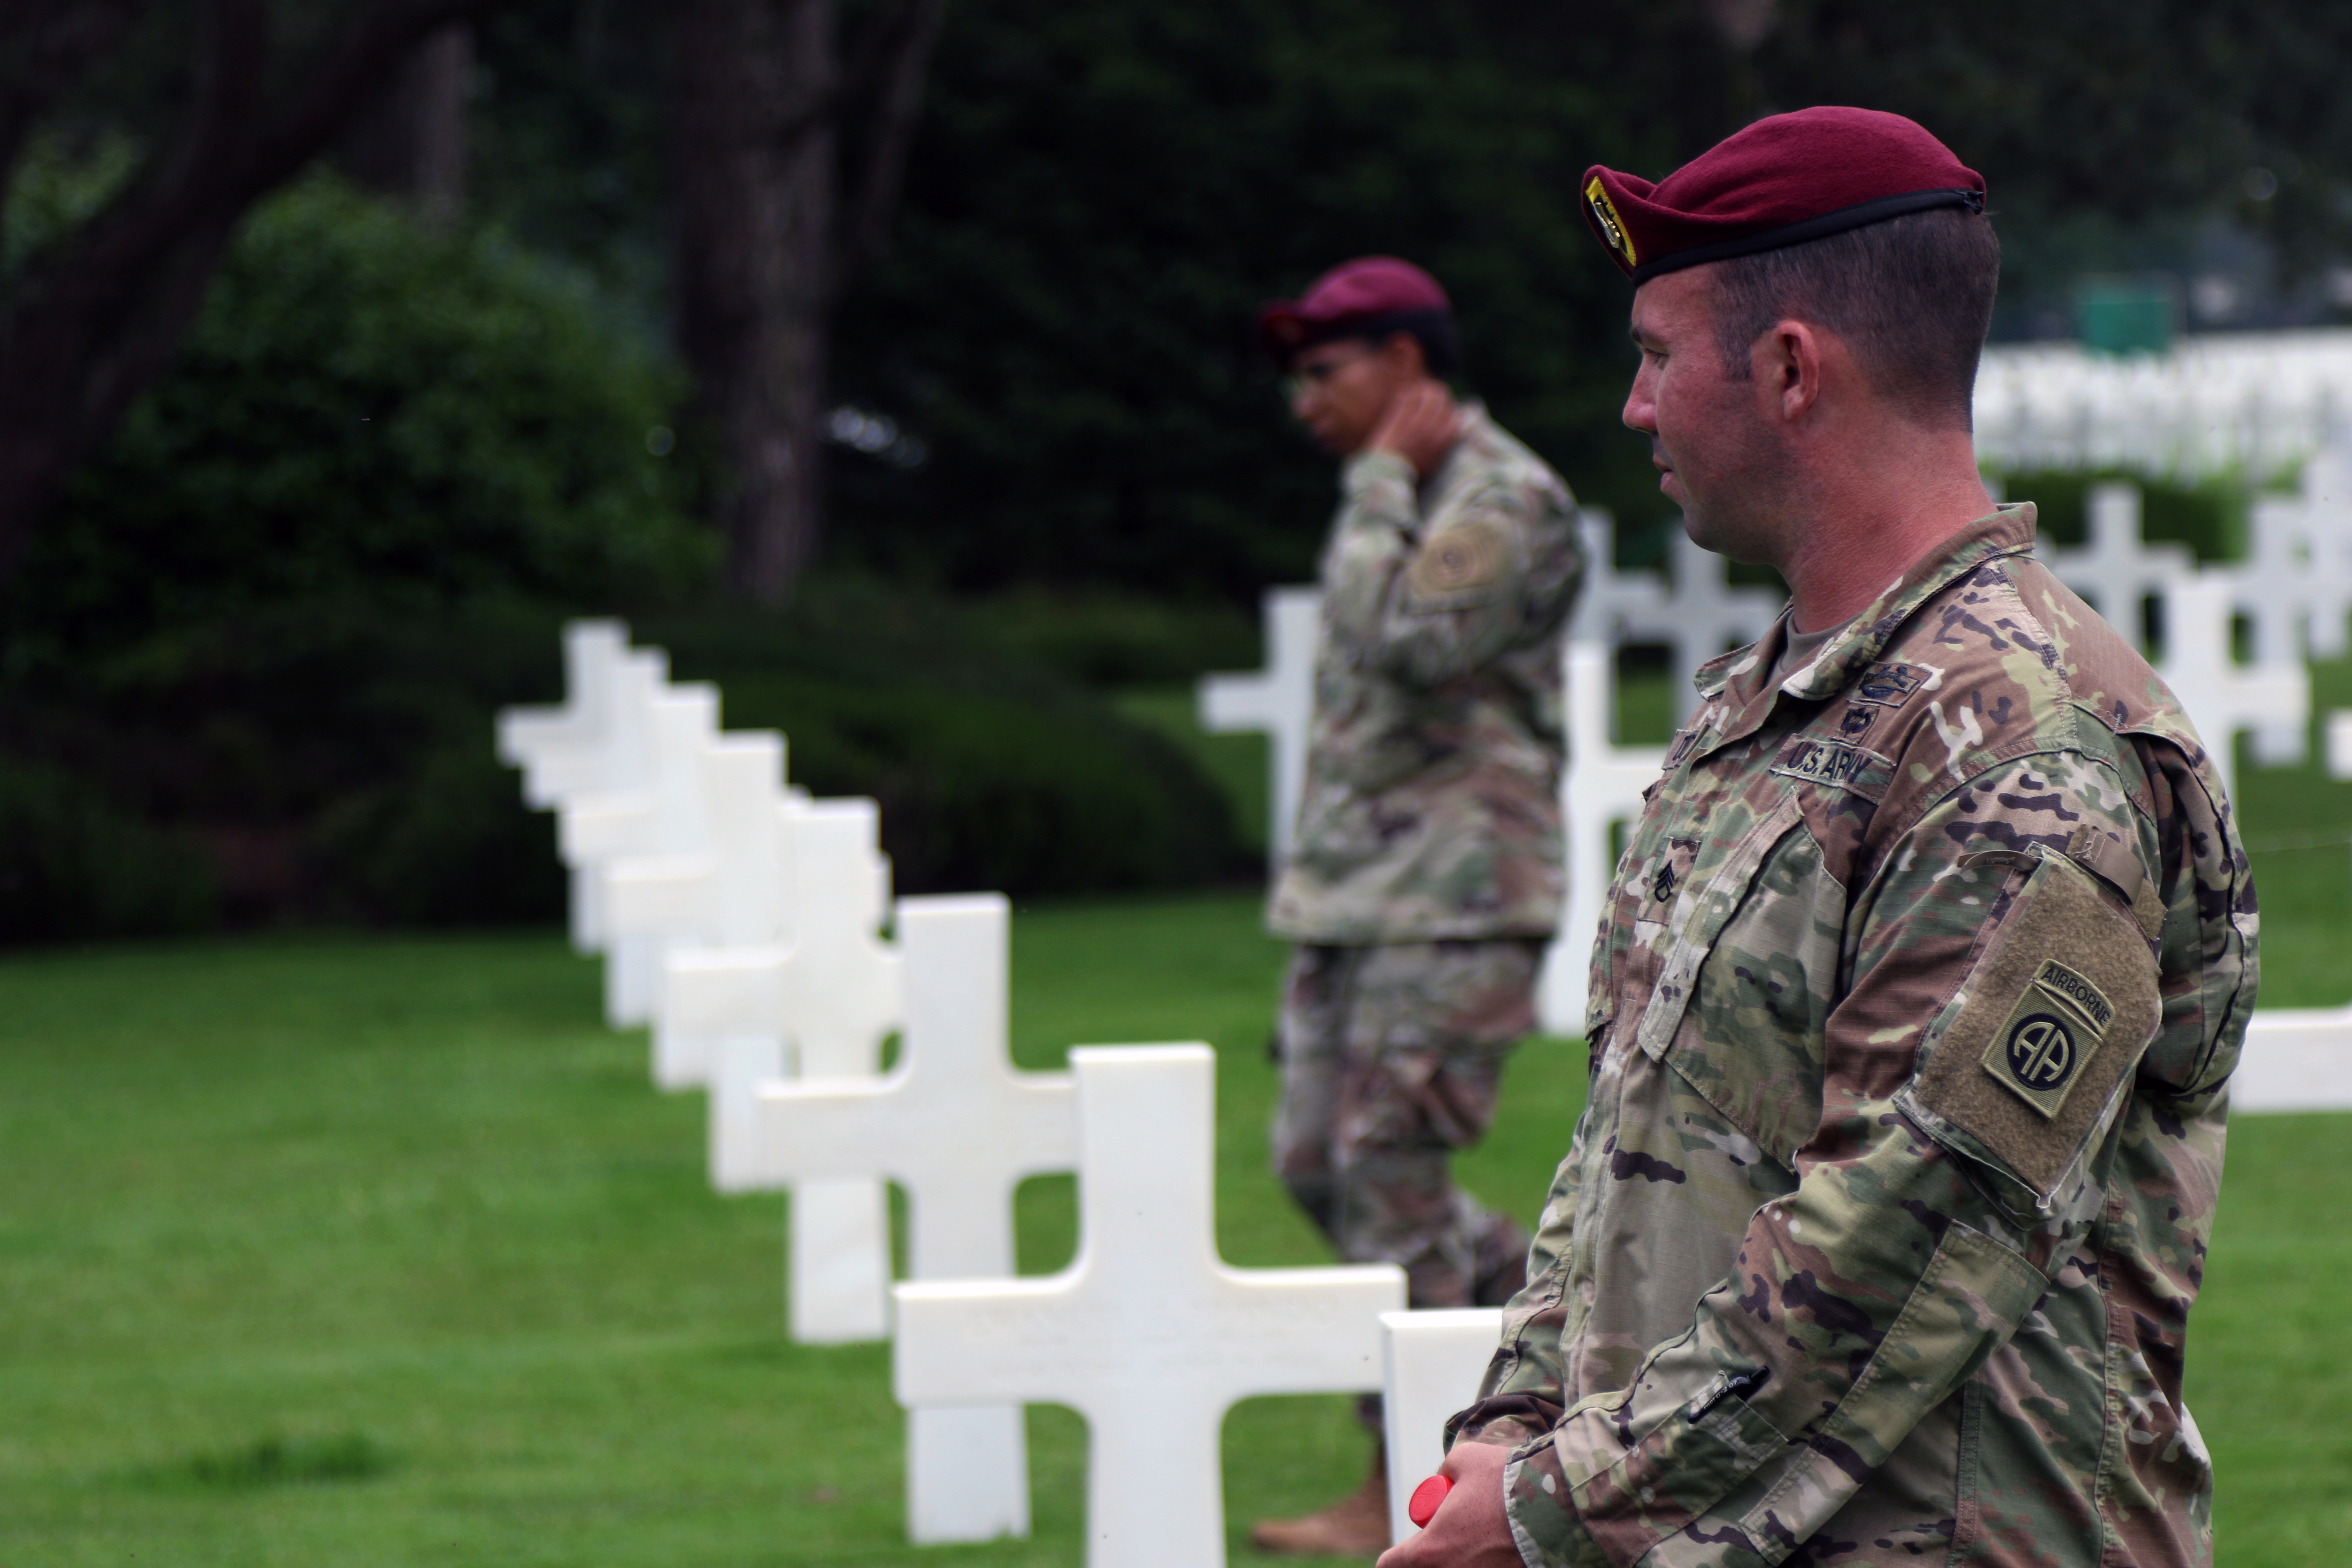 Staff Sgt. Kyle Dodier (front), a weapons squad leader with Co. B., 2nd Battalion 504th Parachute Infantry Regiment, 1st Brigade Combat Team, 82nd Airborne Division, walks among the tombstones at the Normandy American Cemetery and Memorial during a staff ride on May 31, at Normandy, France. Dodier and dozens of other division paratroopers are in Normandy to participate in the 74th D-Day commemoration and ceremonies.